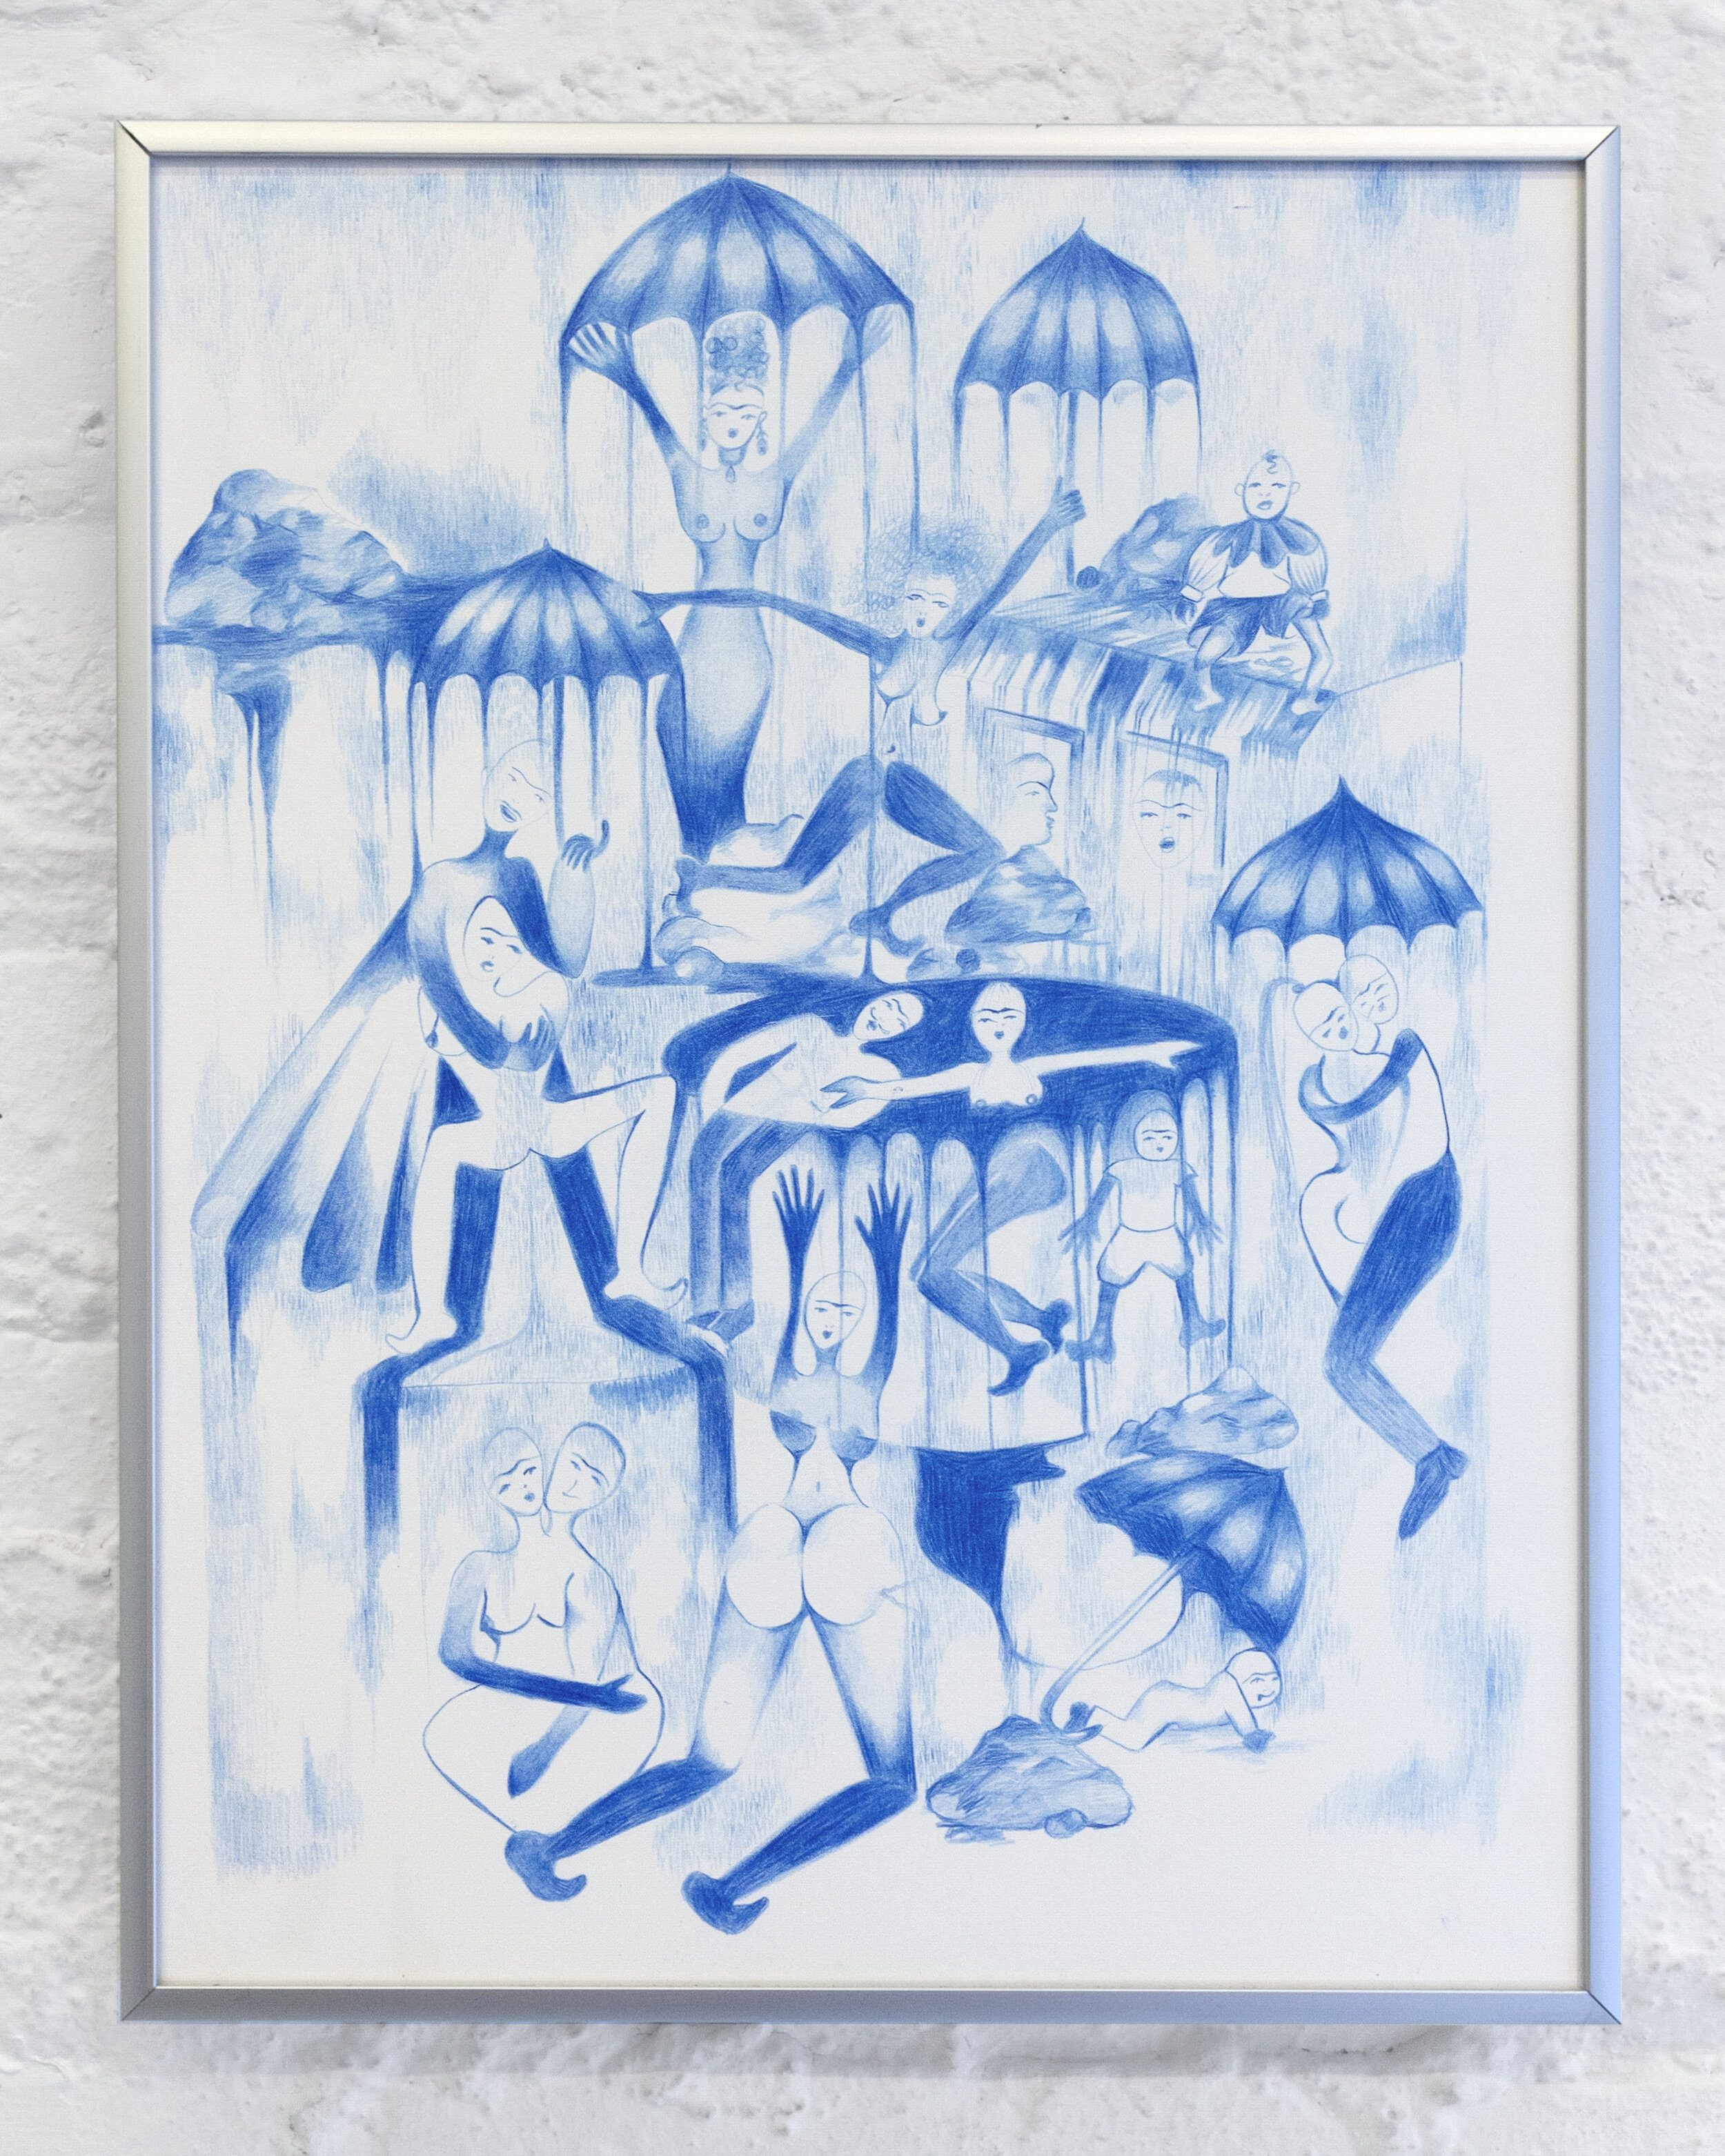 Puddles of Blue, 2019. Pencil on paper, 11 inches x 14 inches.